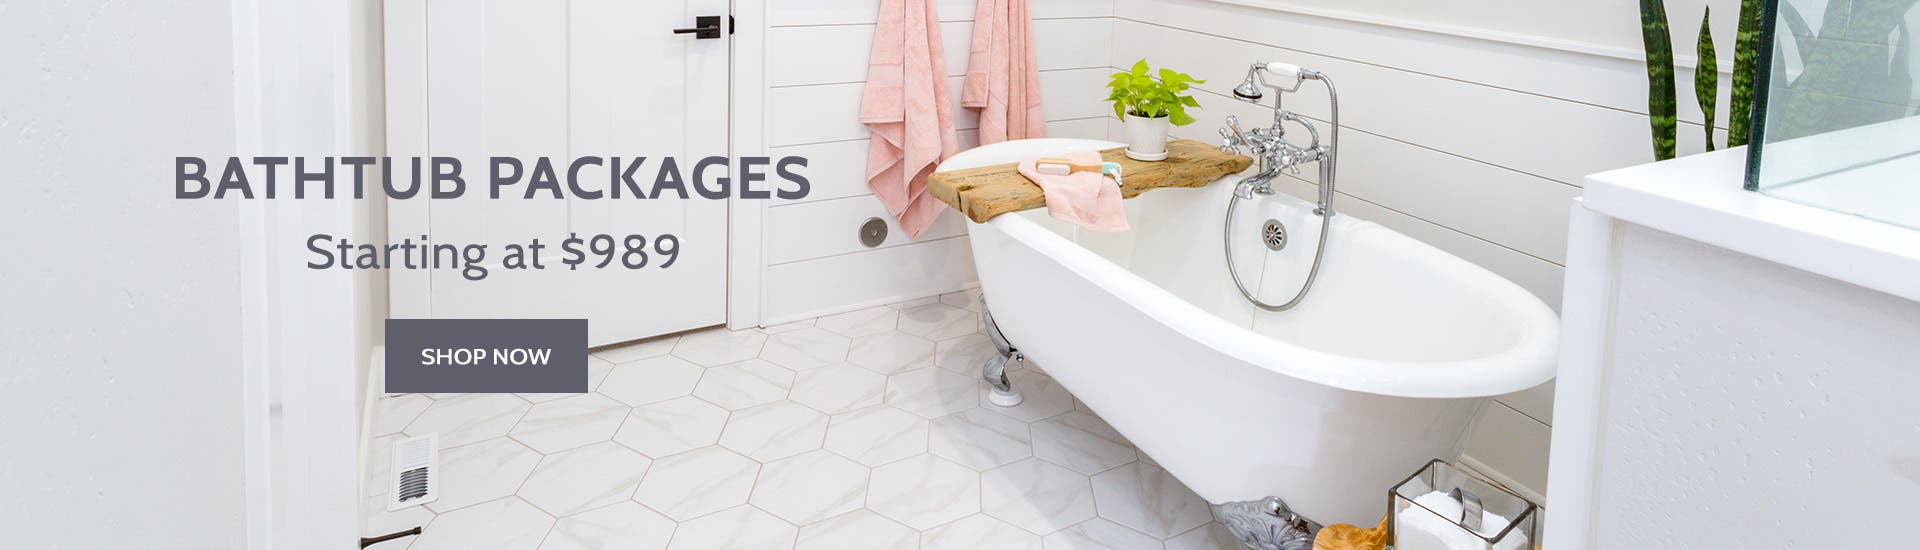 Bathtub Packages Starting At $989